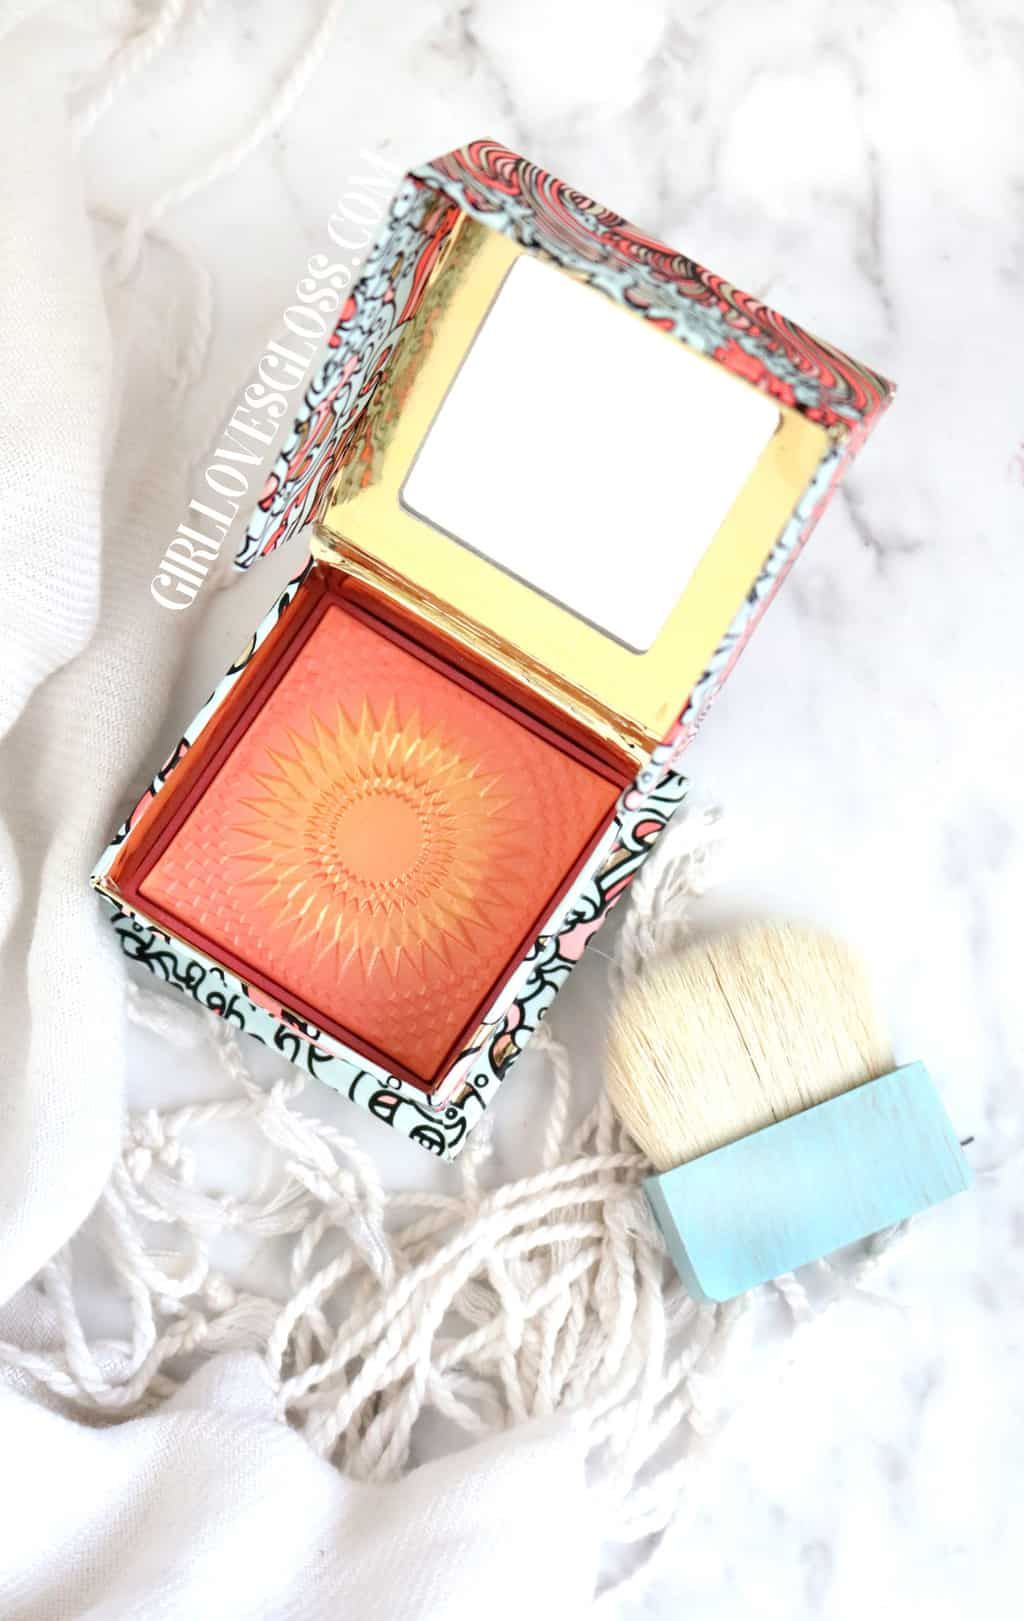 Benefit GALifornia Blush Review and Swatch